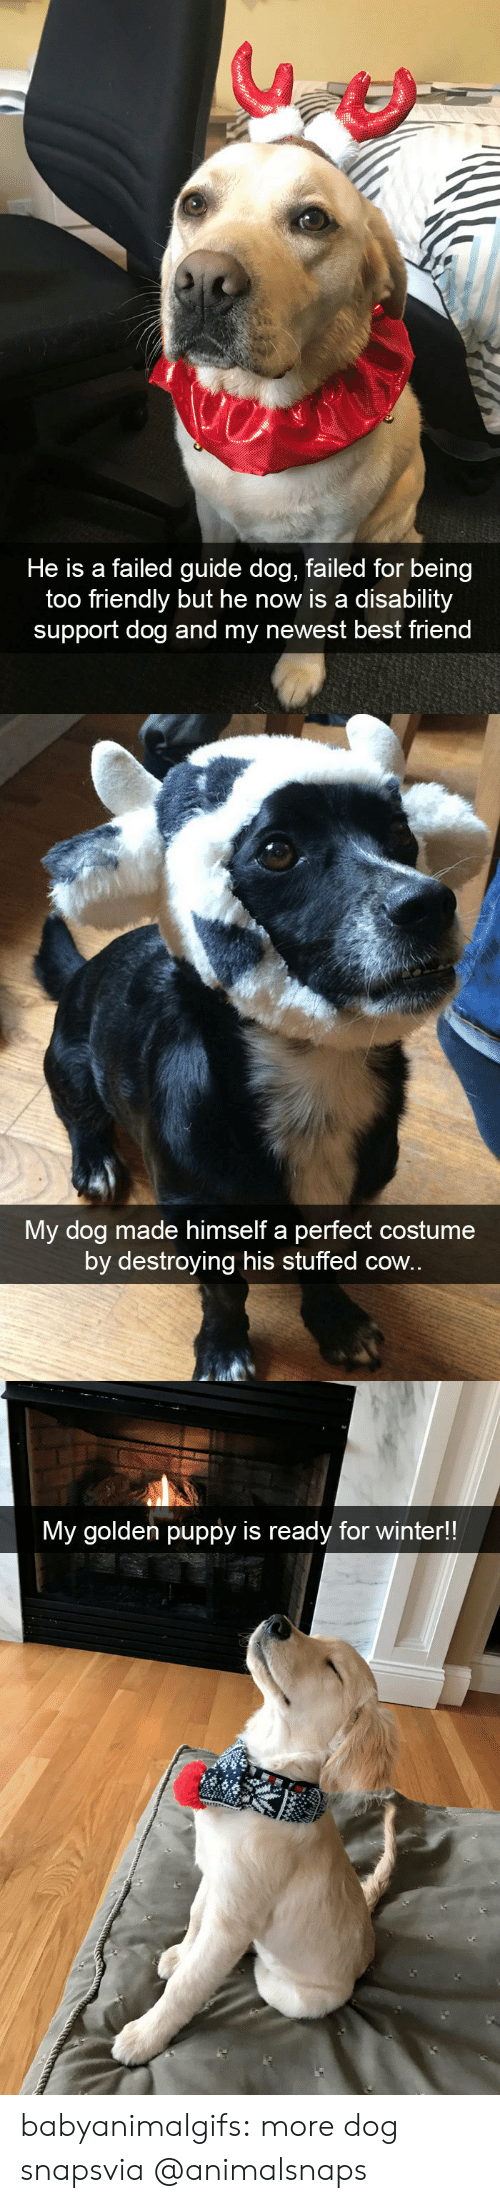 stuffed: He is a failed guide dog, failed for being  too friendly but he now is a disability  support dog and my newest best friend   My dog made himself a perfect costume  by destroying his stuffed cow.   My golden puppy is ready for winter!! babyanimalgifs:  more dog snapsvia @animalsnaps​